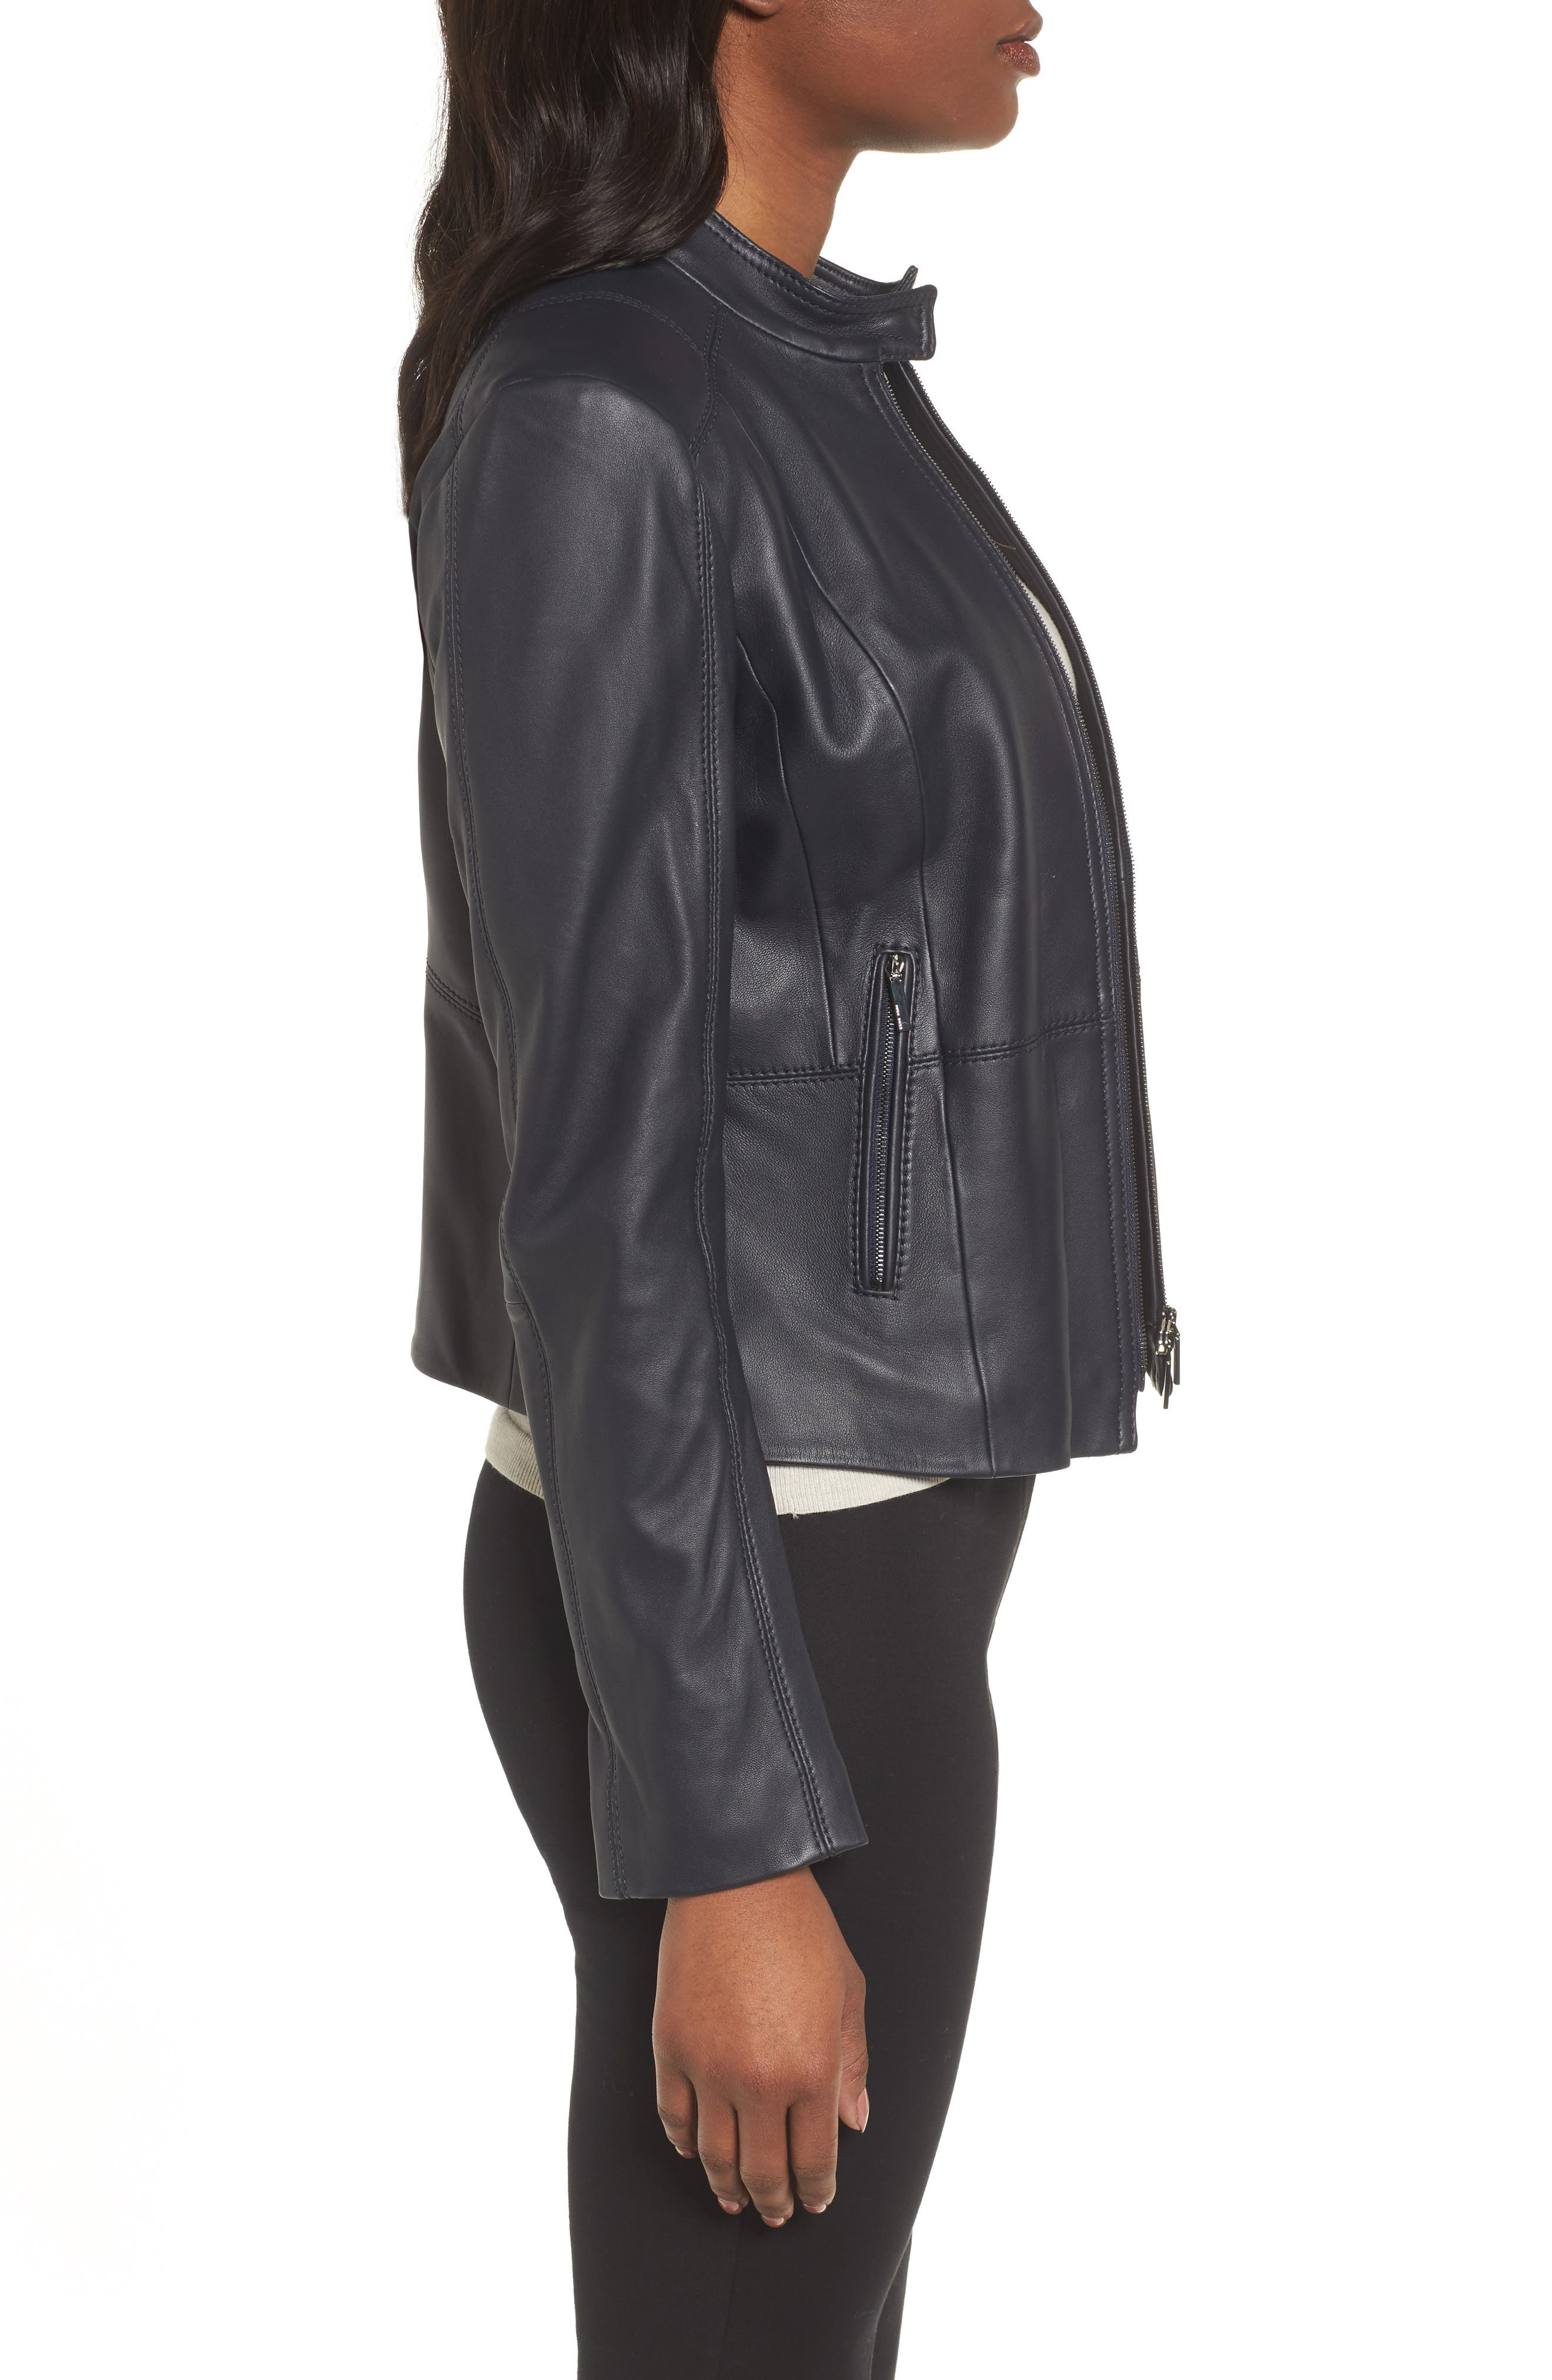 Sammonaie Leather Jacket,                             Alternate thumbnail 3, color,                             480